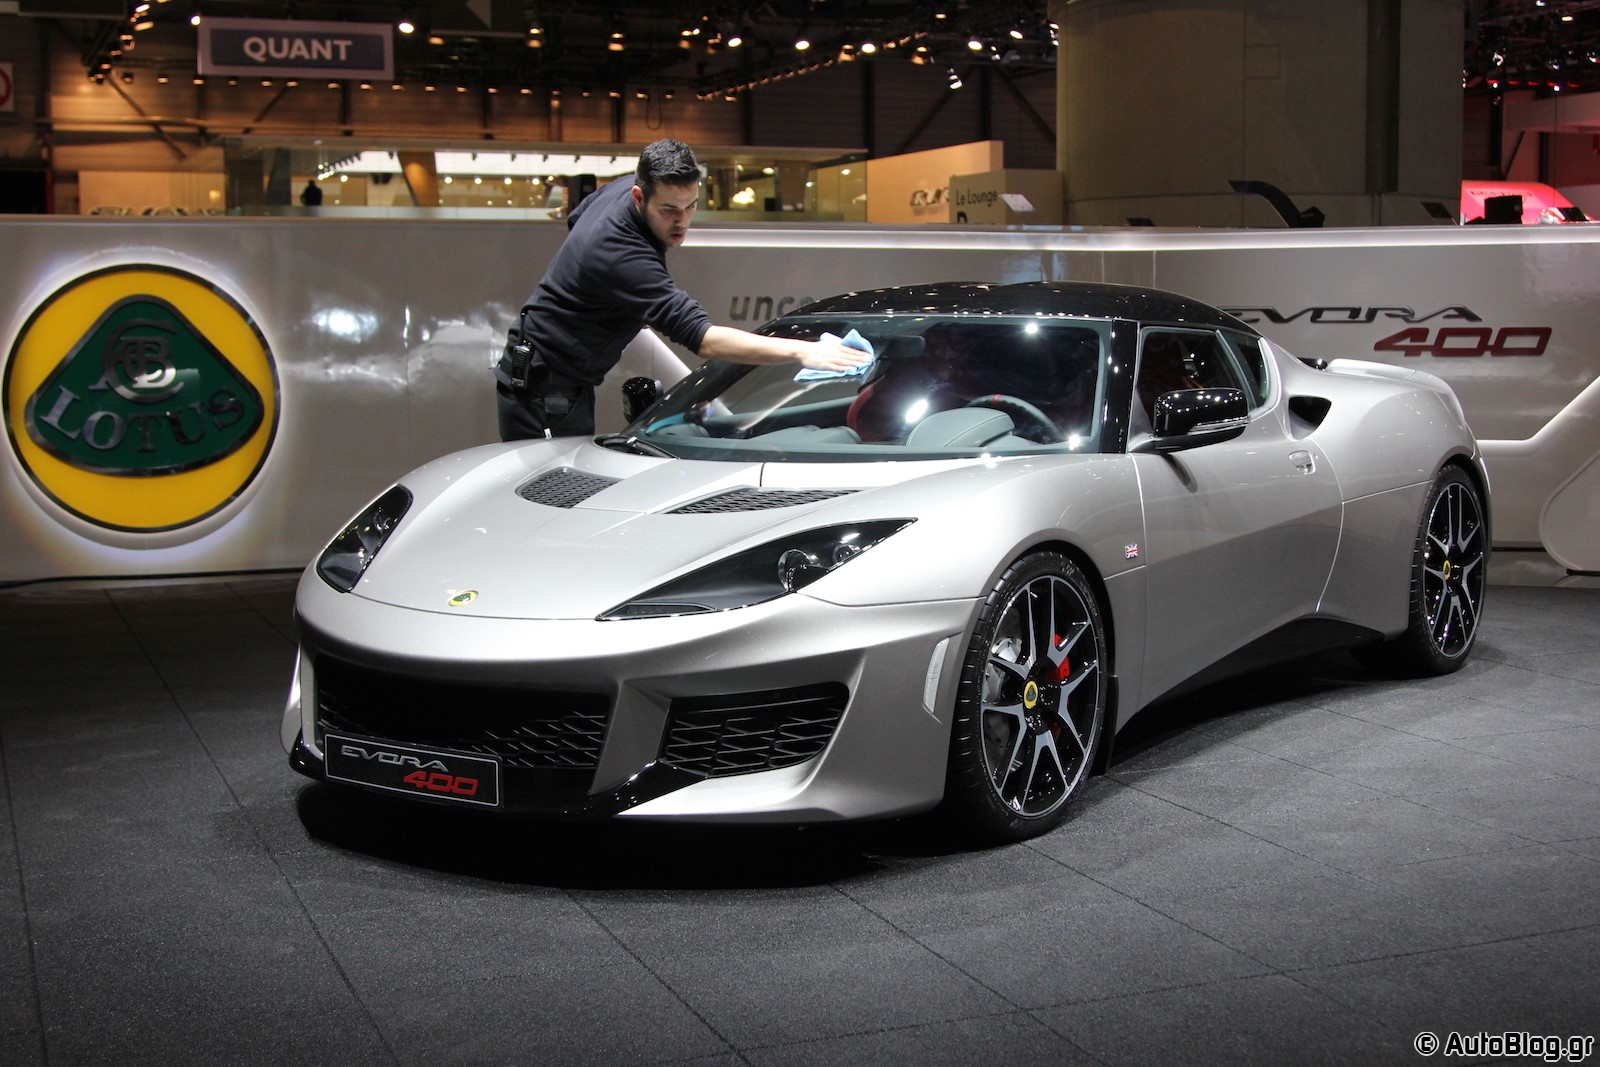 58 All New 2019 Lotus Evora Engine